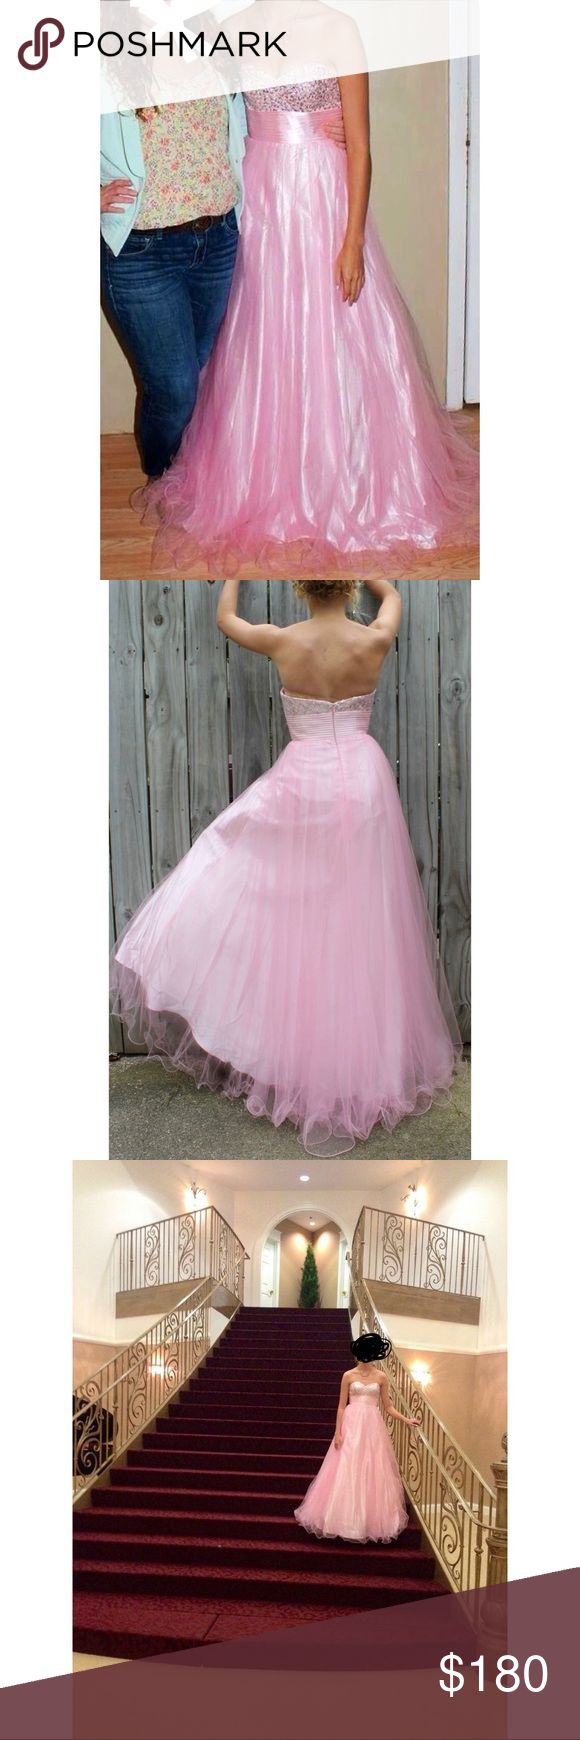 Best 25+ Poofy prom dresses ideas on Pinterest | Big prom ...